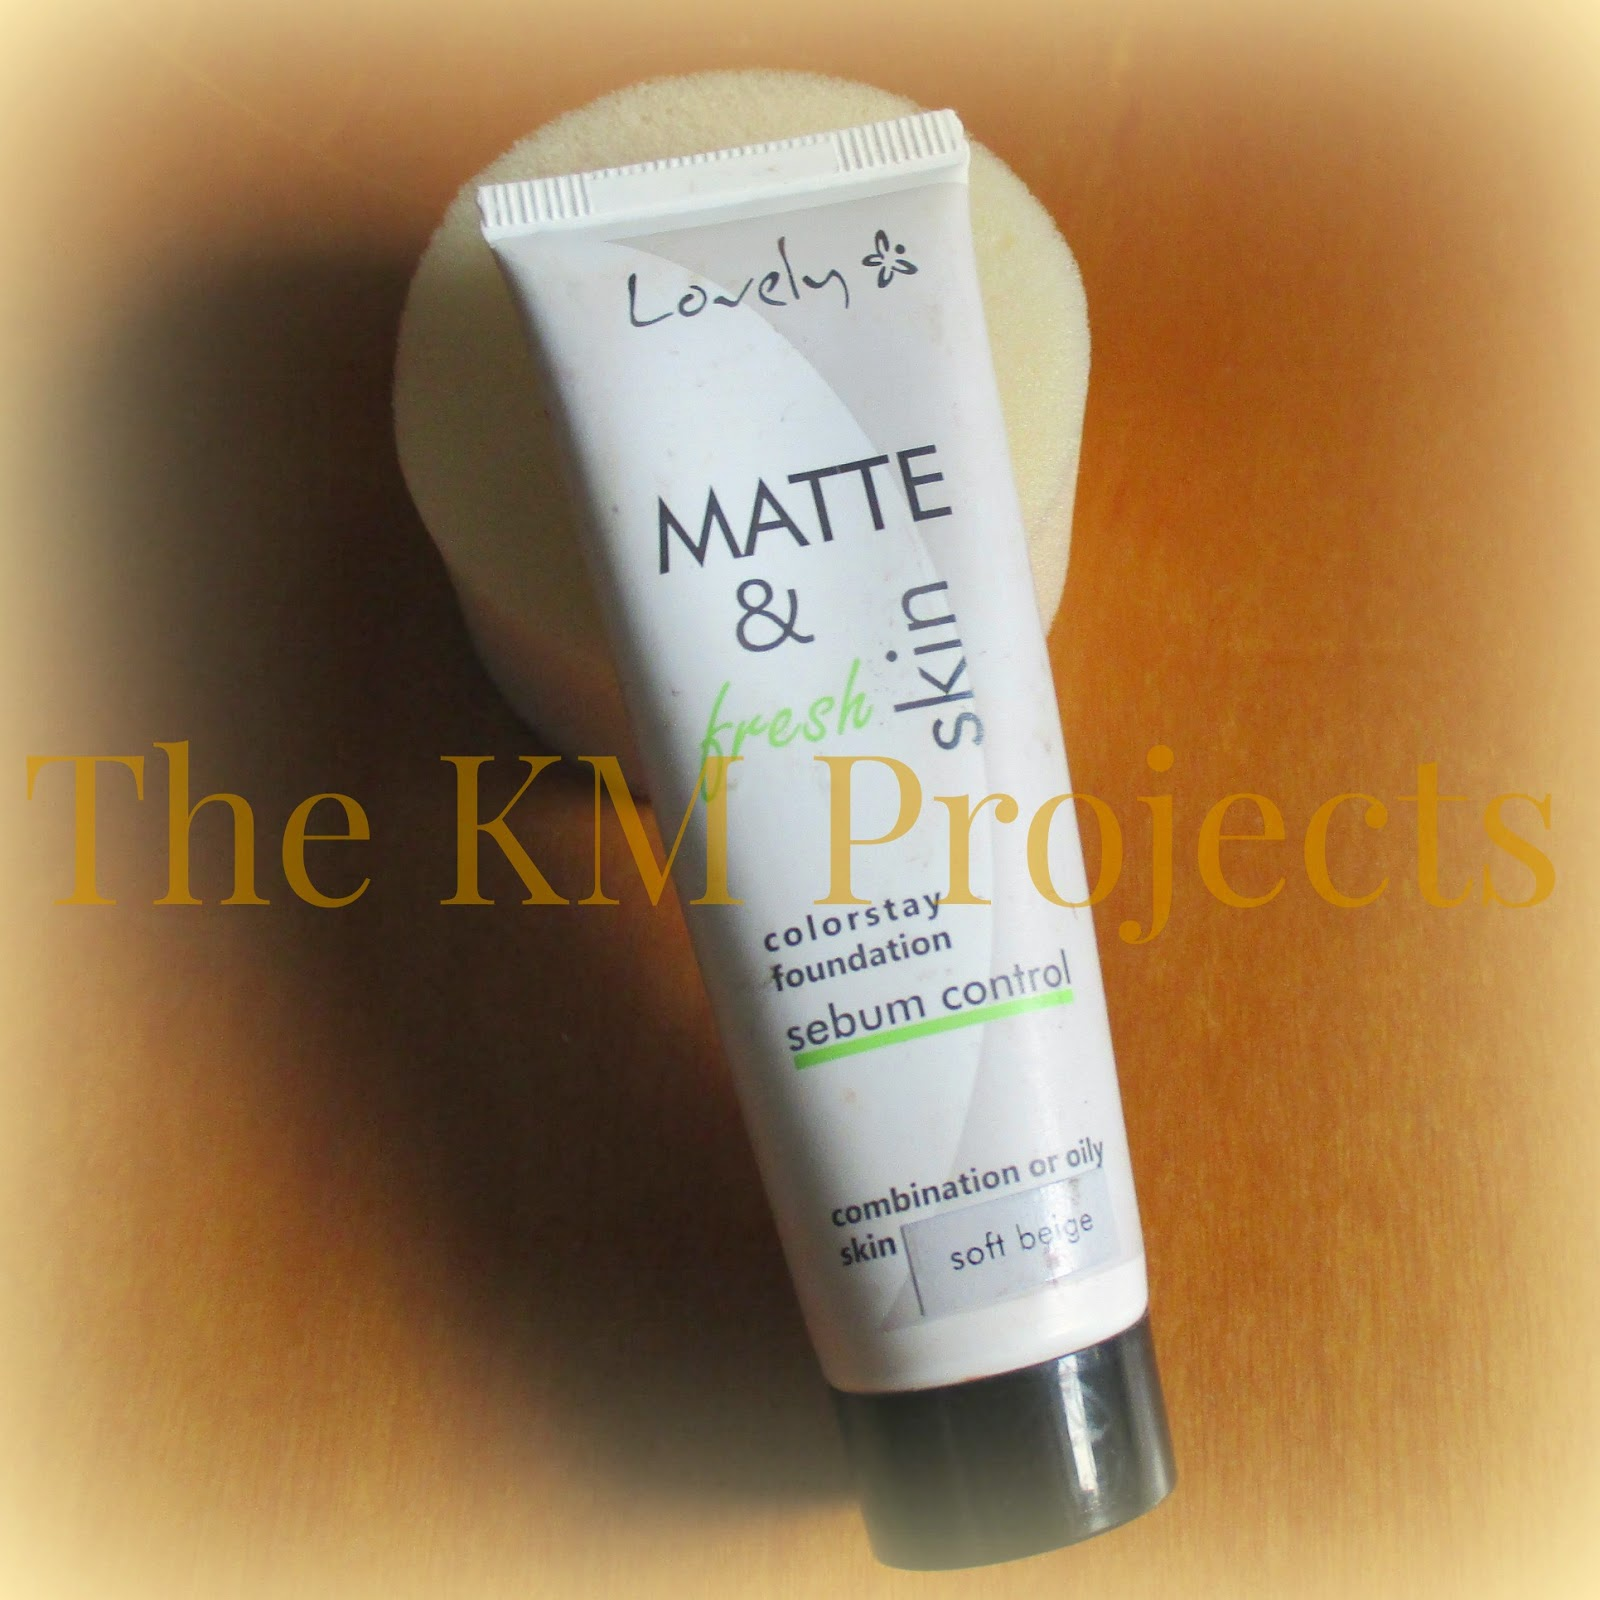 Lovely Matte & fresh skin colorstay foundation